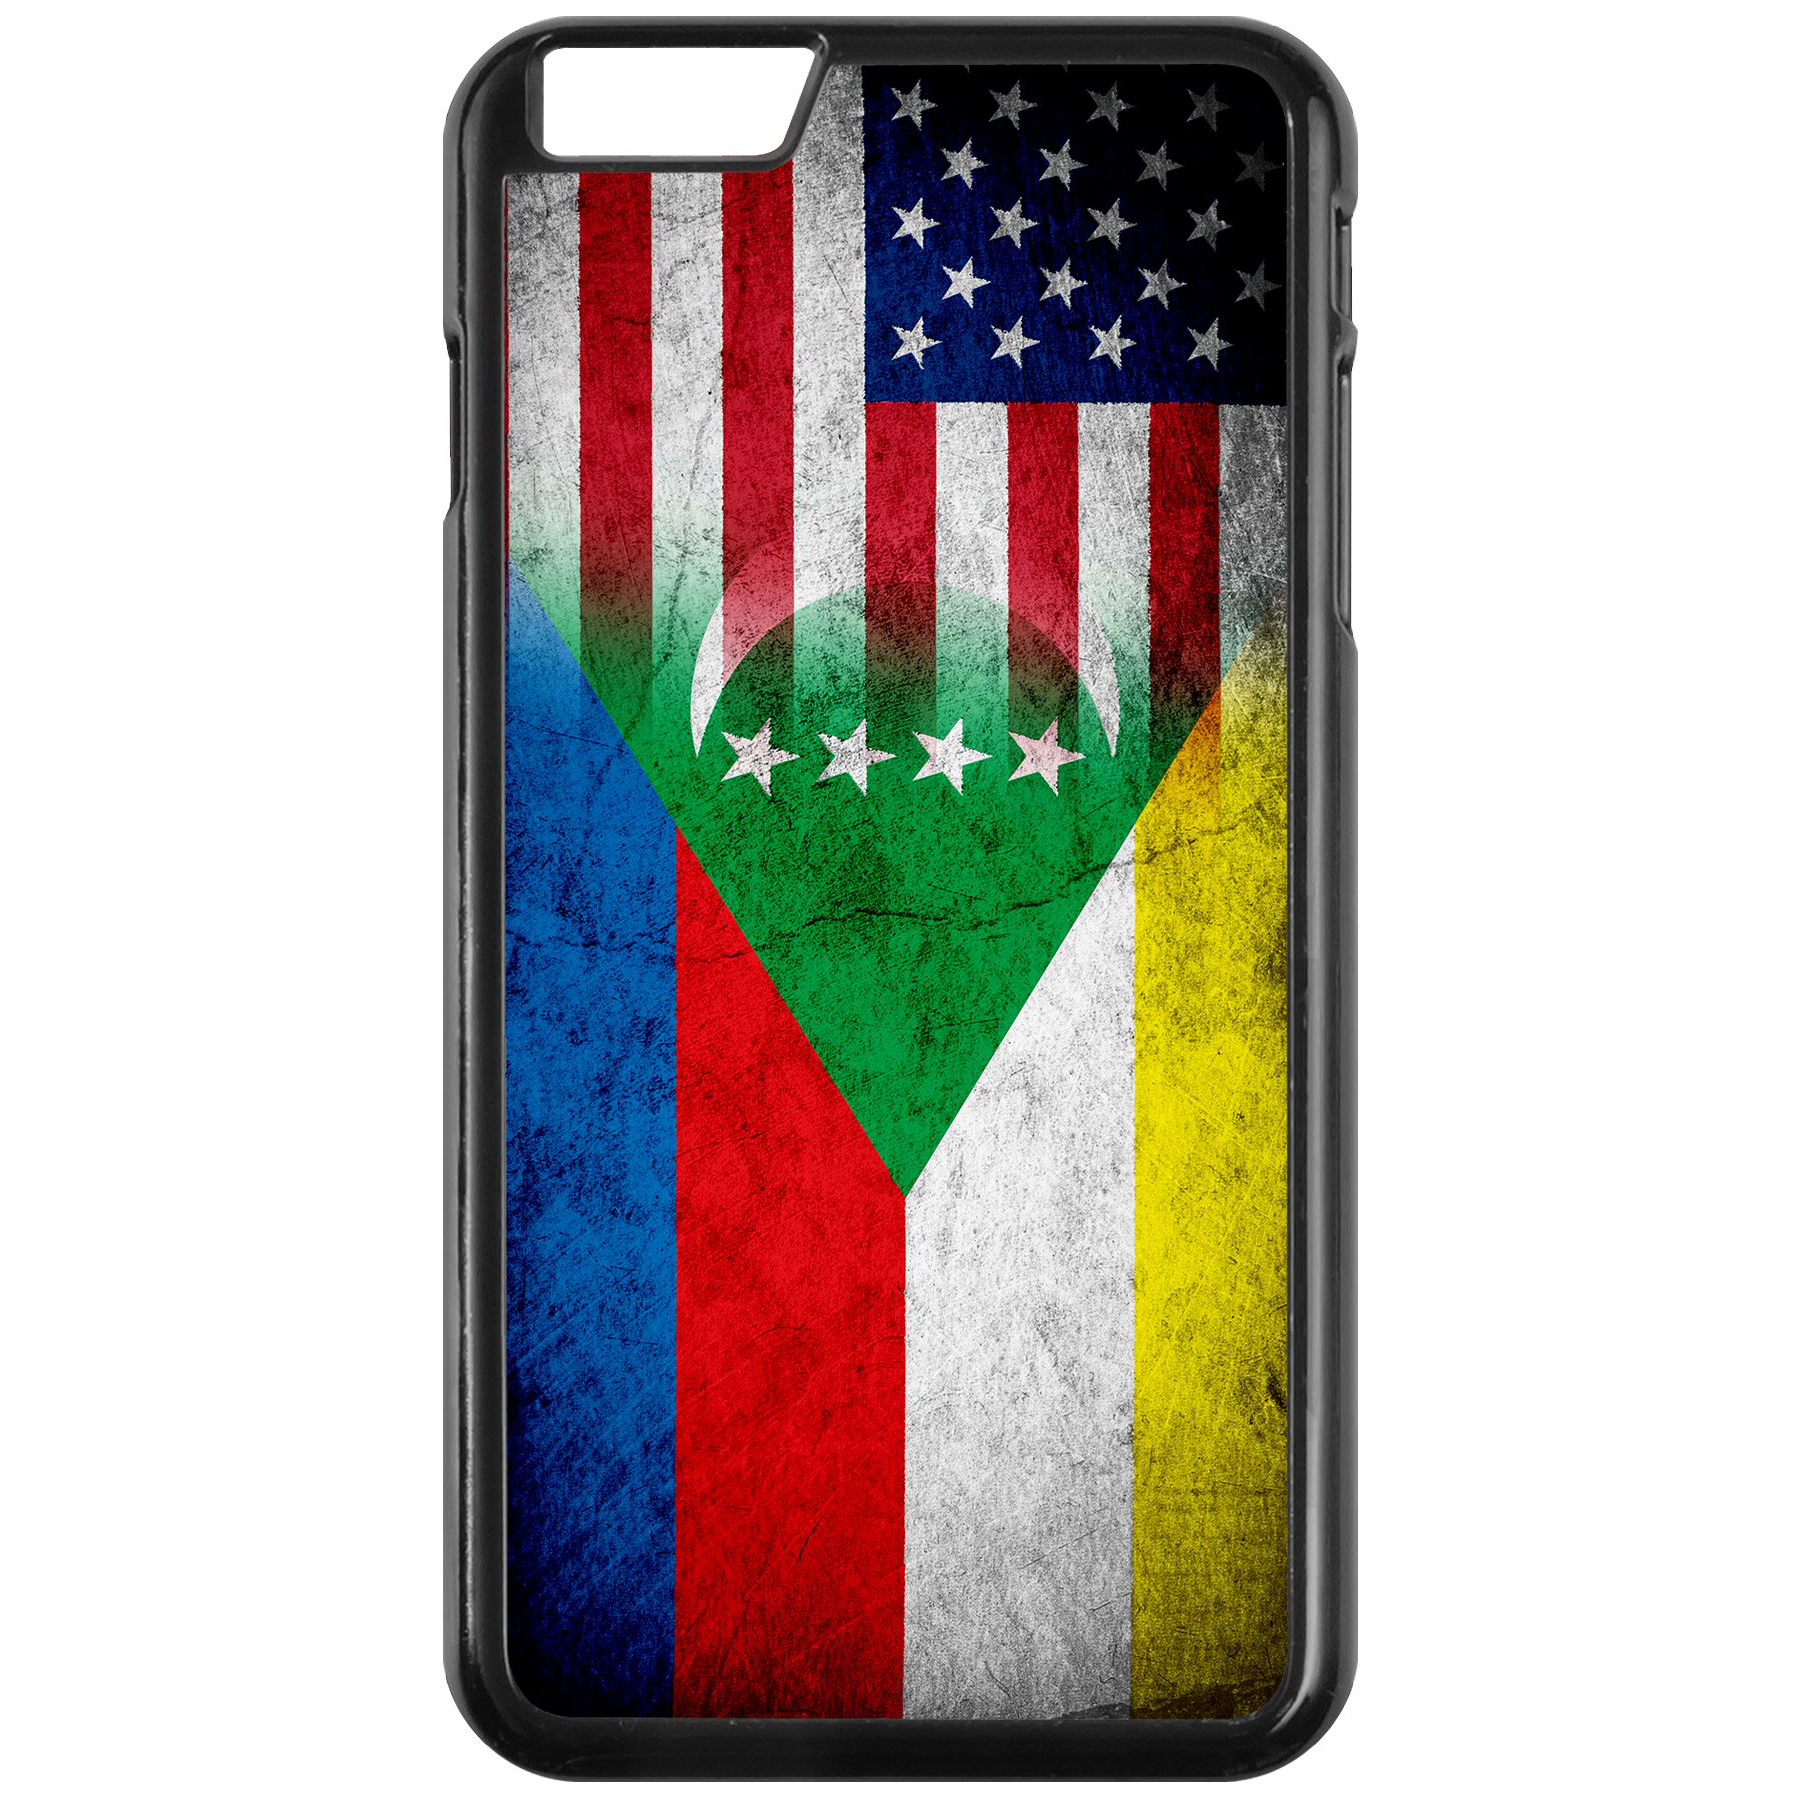 Apple-iPhone-Case-with-Flag-of-Comoros-Comorian-Many-Design-Options thumbnail 84